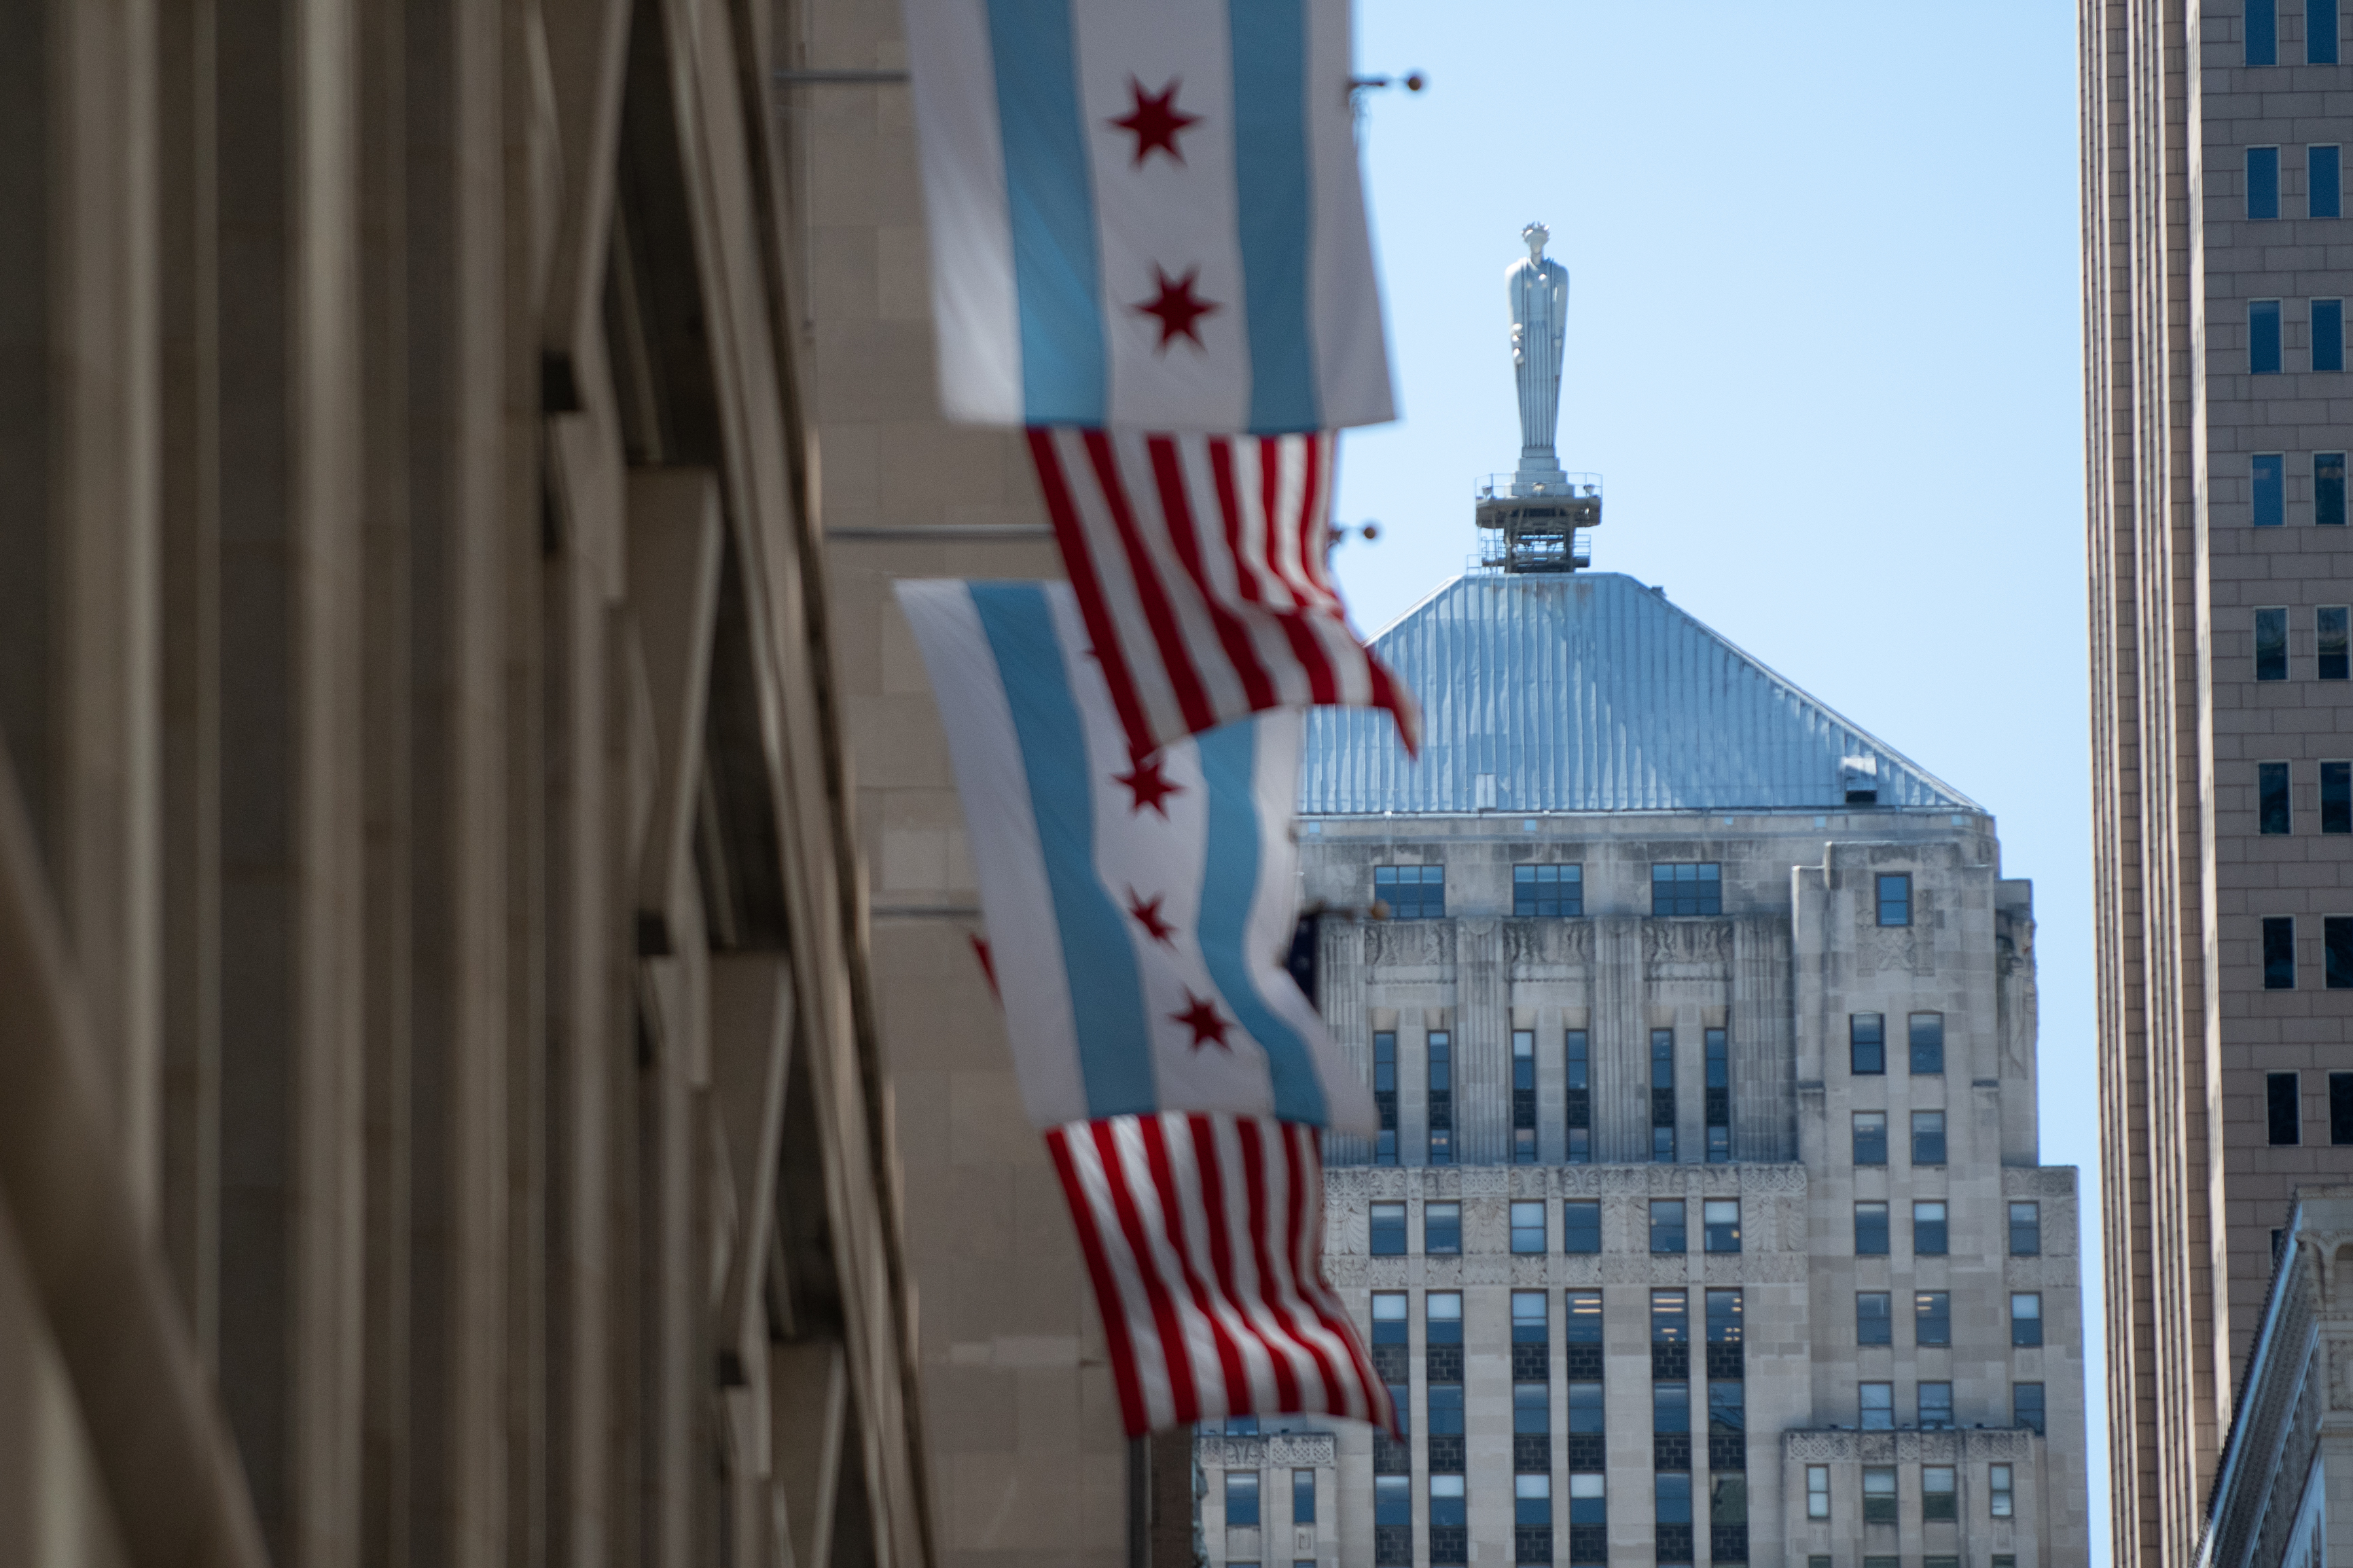 Chicago City Hall, with the Board of Trade building in the background.